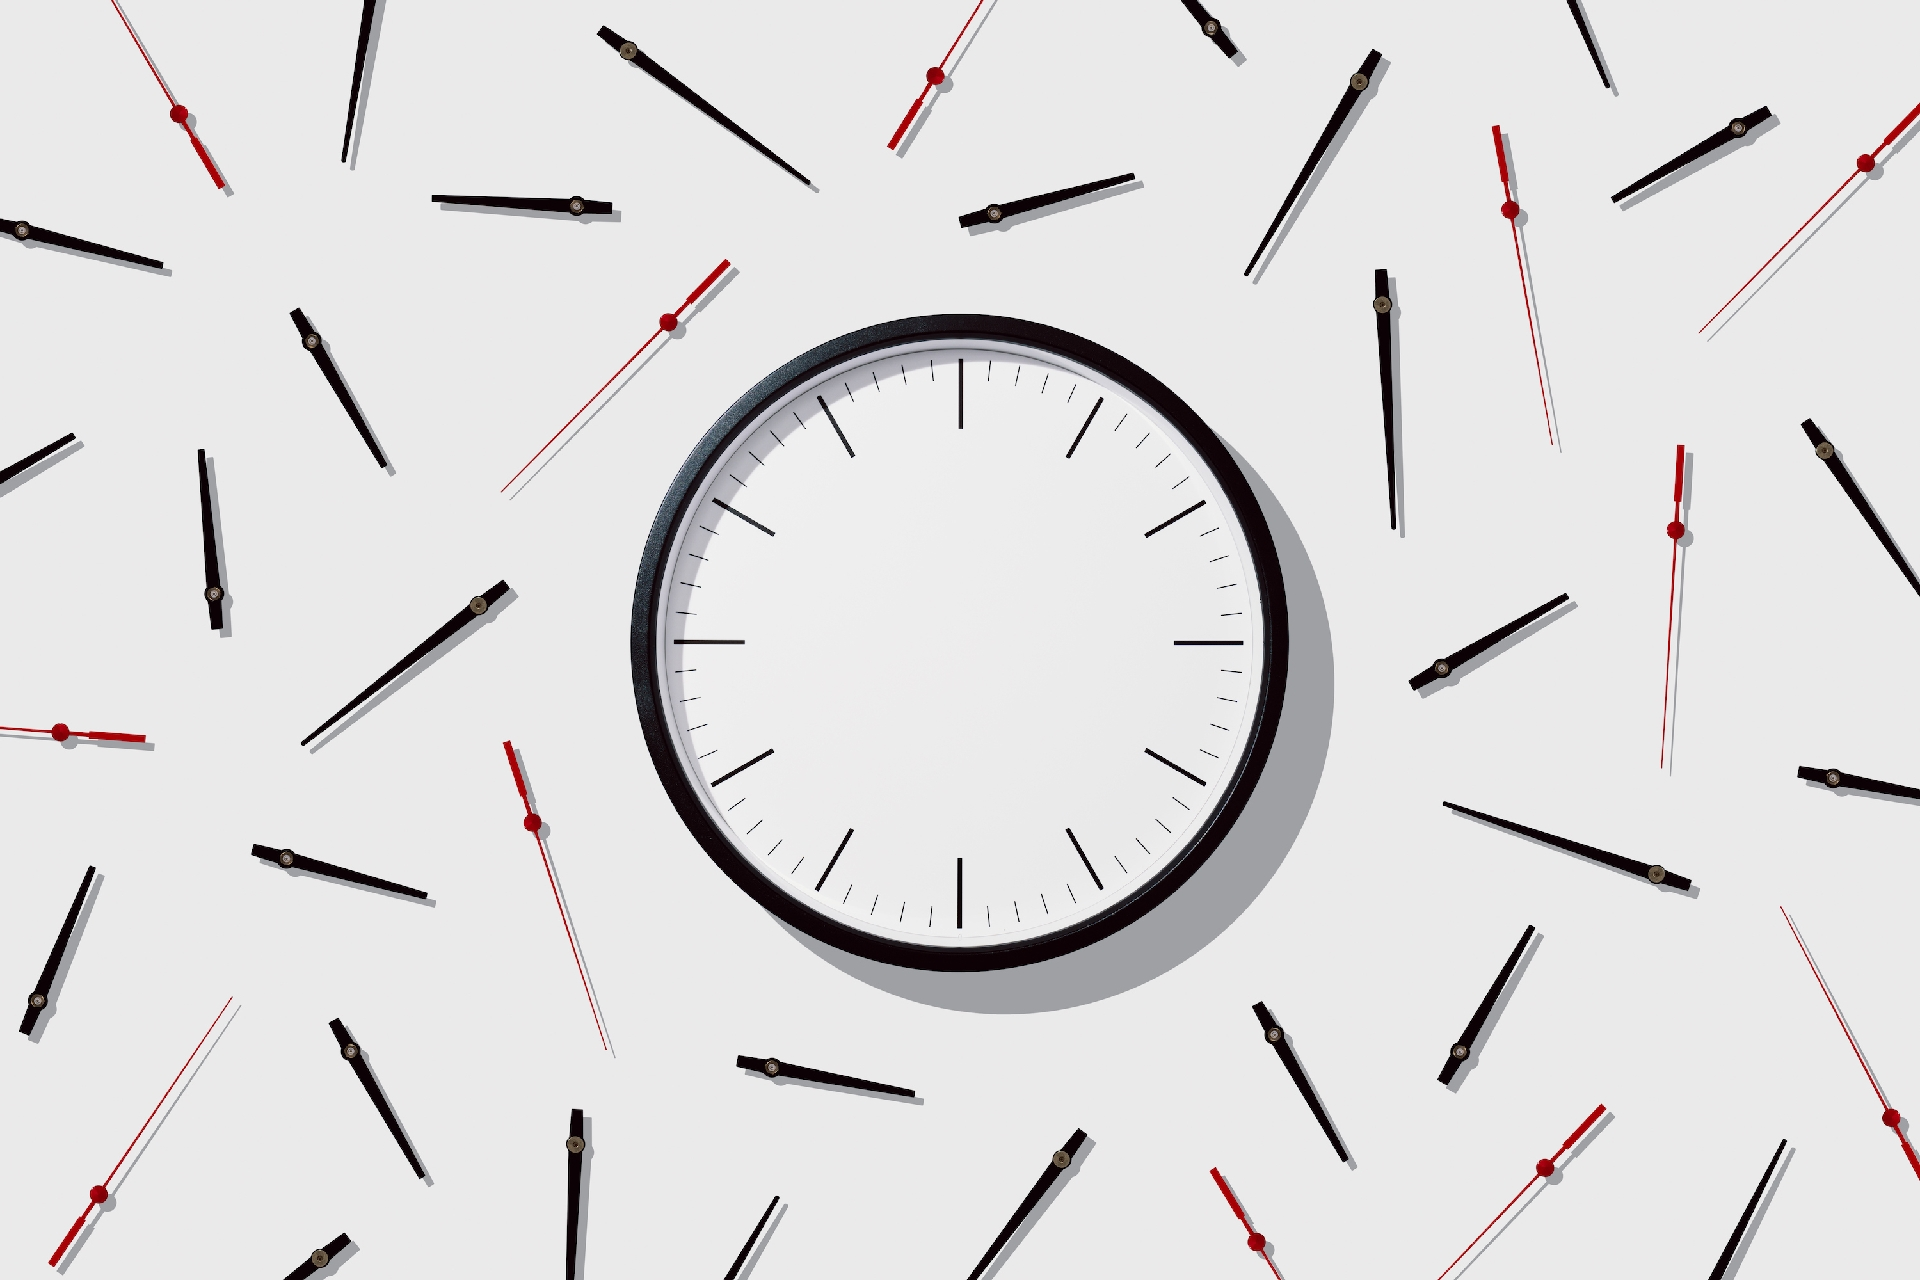 Photo of blank clock face with separated hands